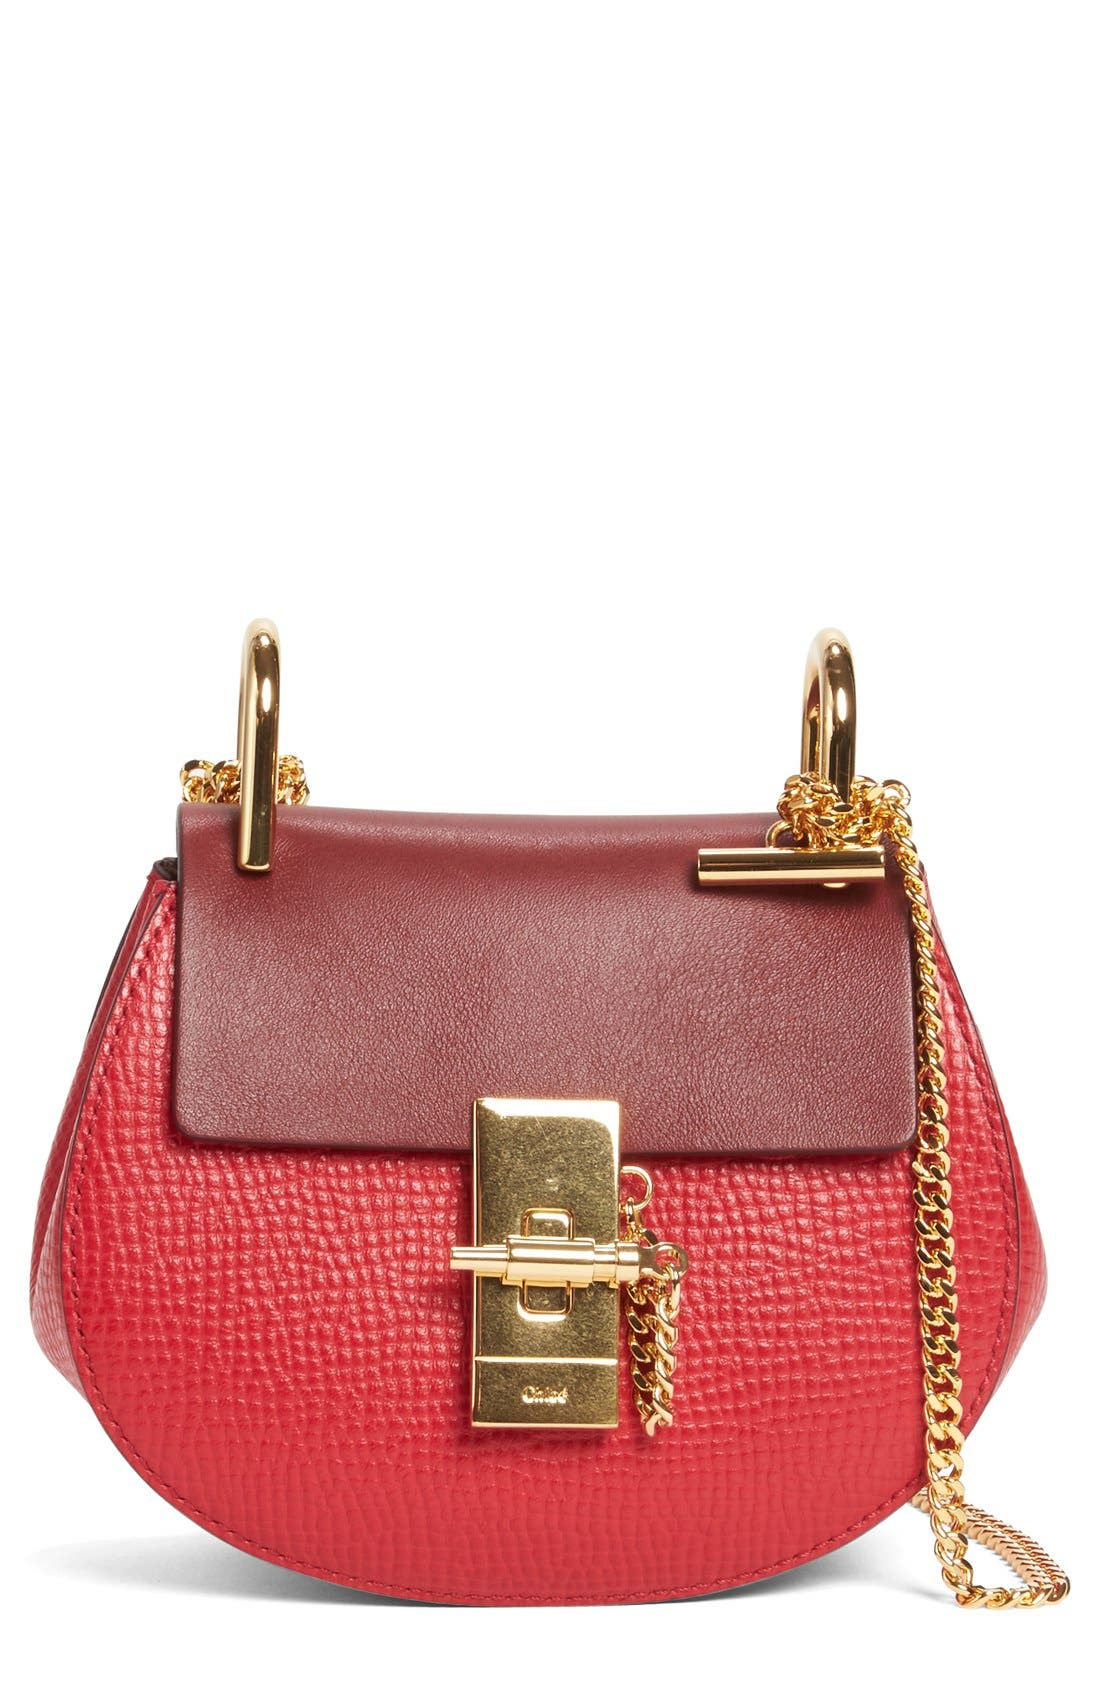 Alternate Image 1 Selected - Chloé Nano Drew Calfskin Shoulder Bag